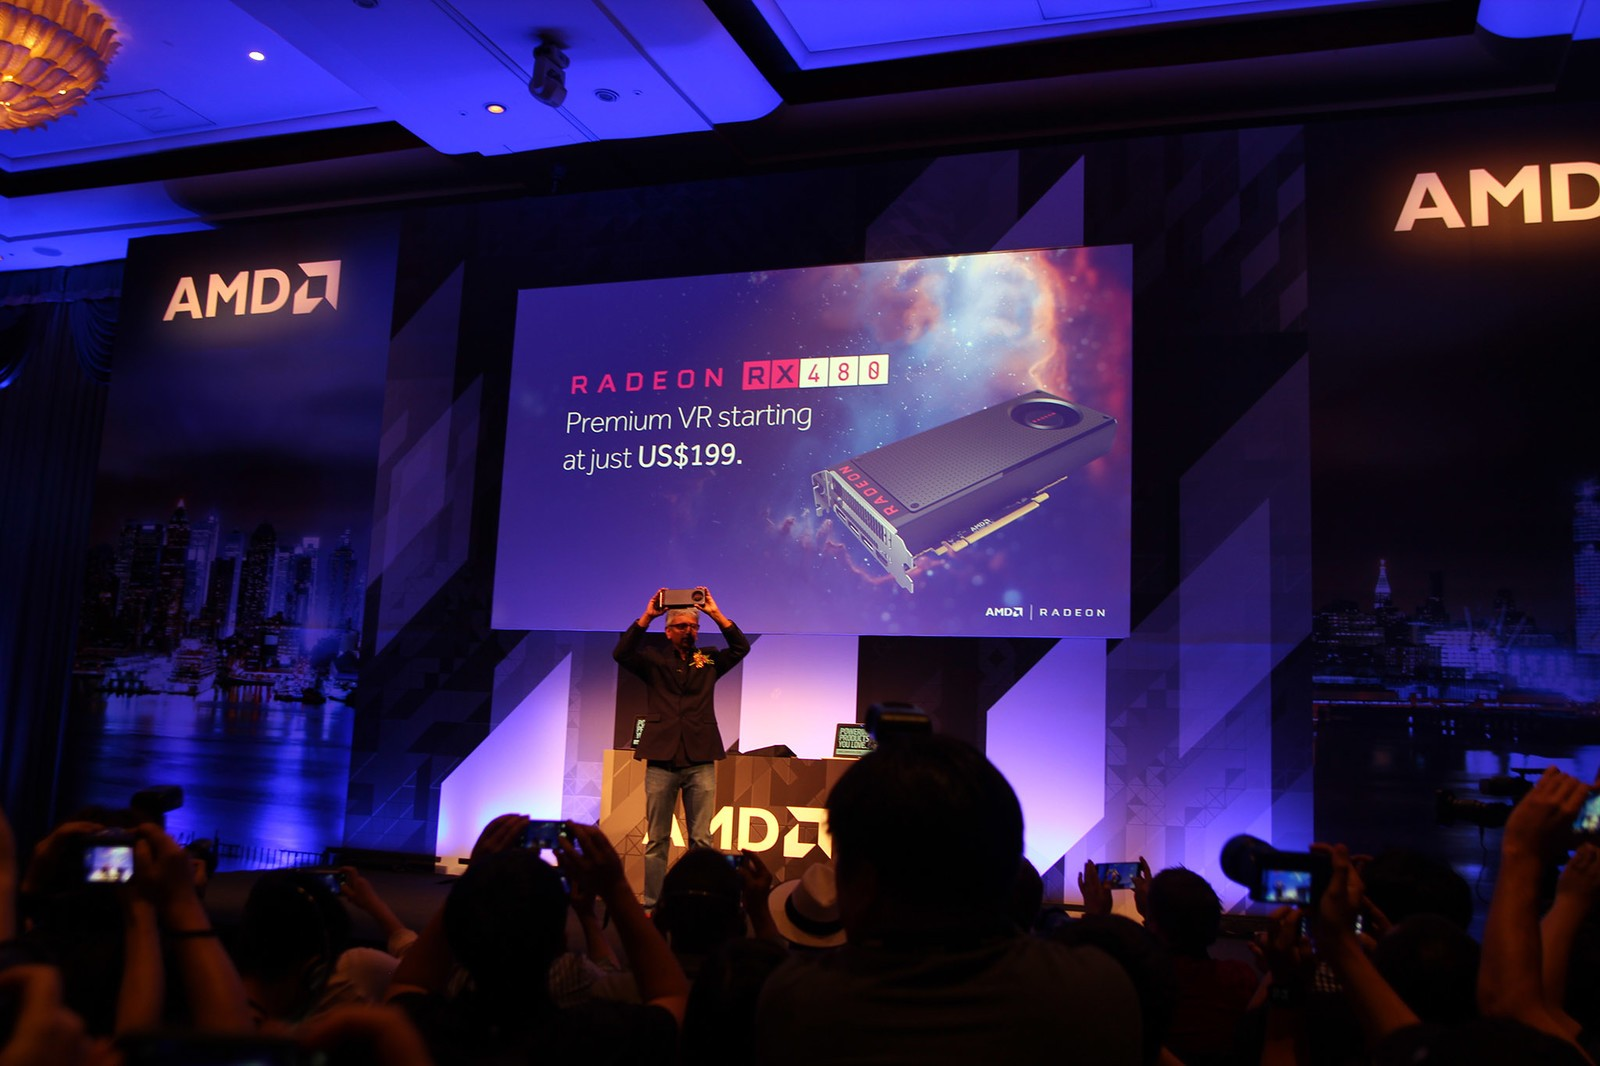 Radeon RX 480 announcement